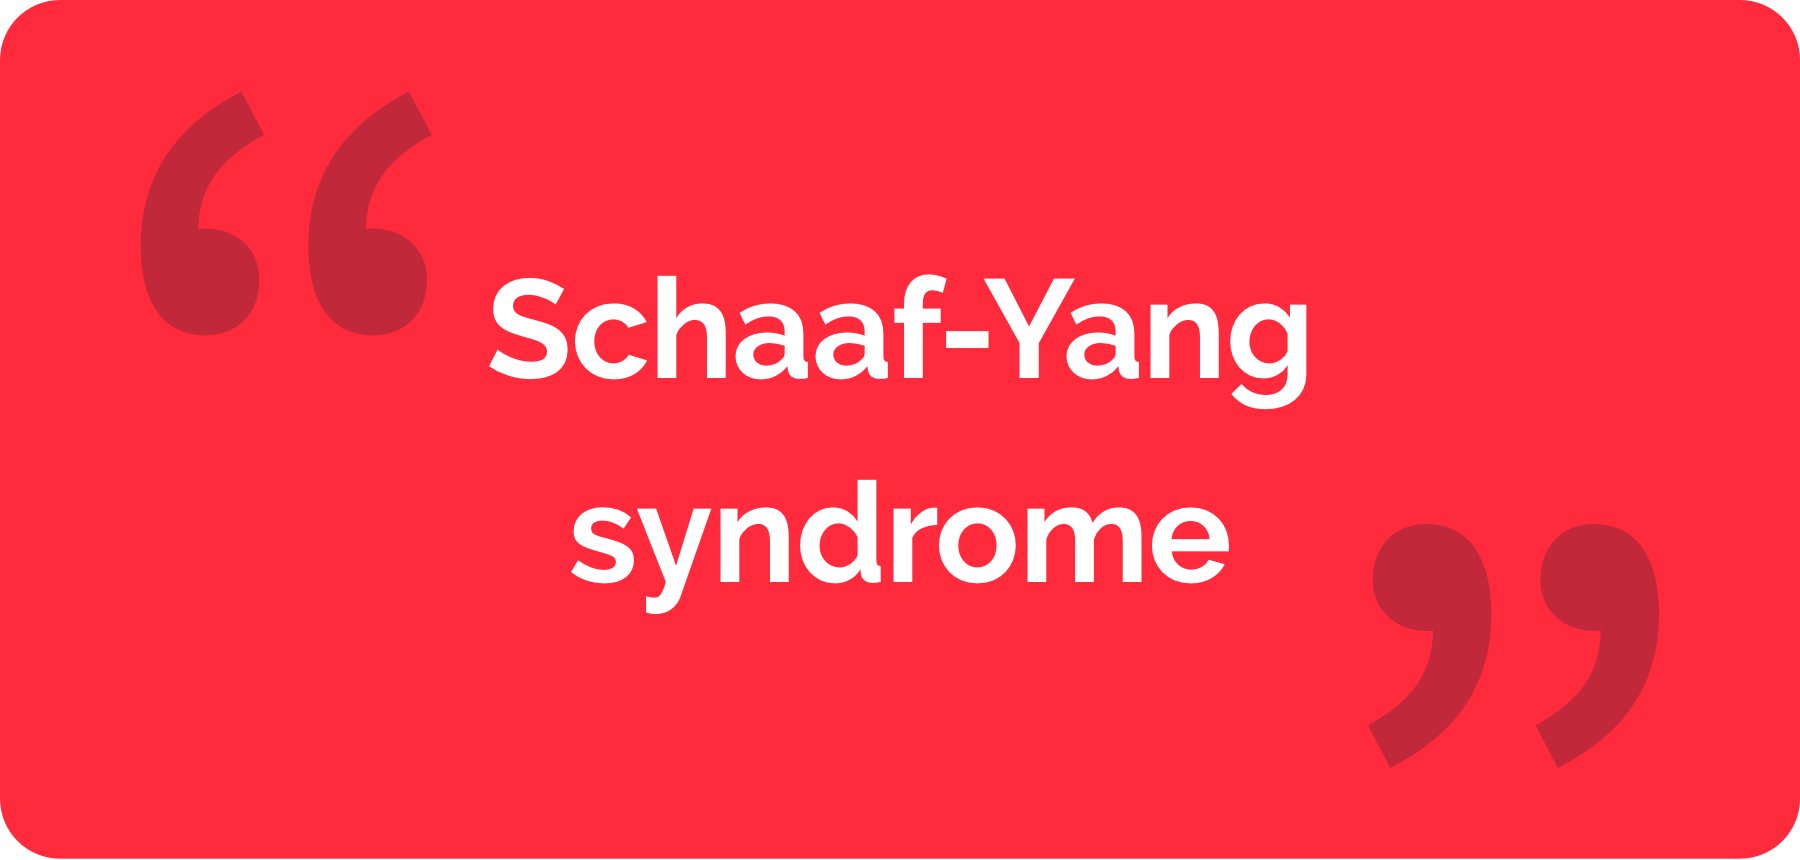 The cover of 'Story of a boy with Schaaf-Yang syndrome'